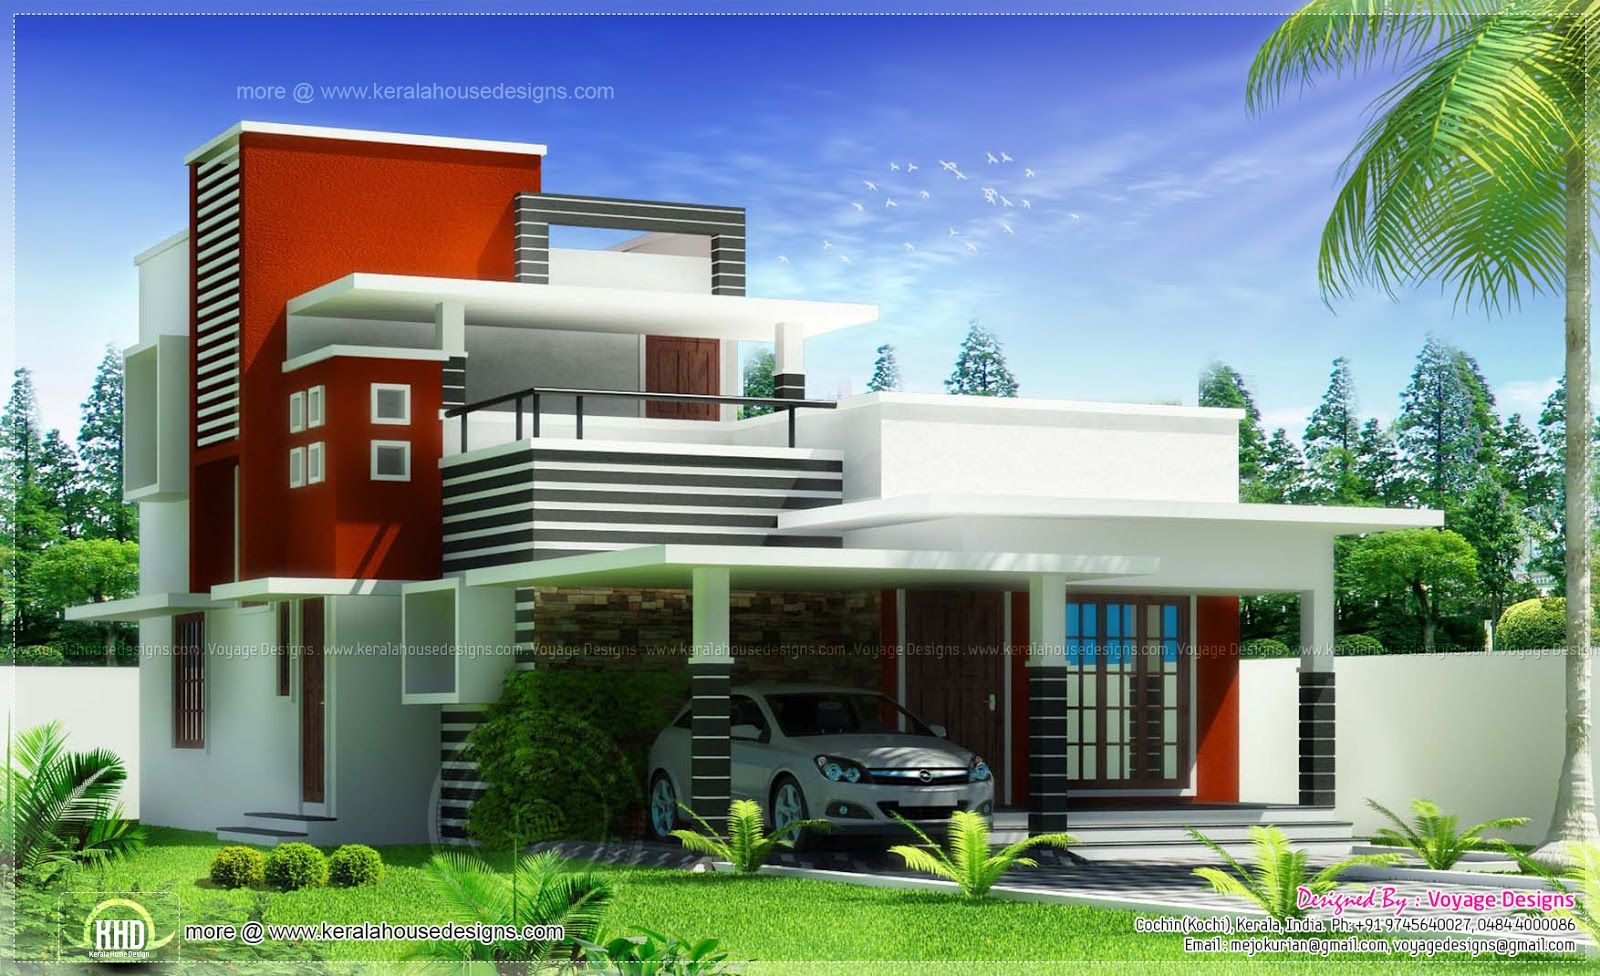 Kerala house designs architecture pinterest kerala for Contemporary indian house elevations